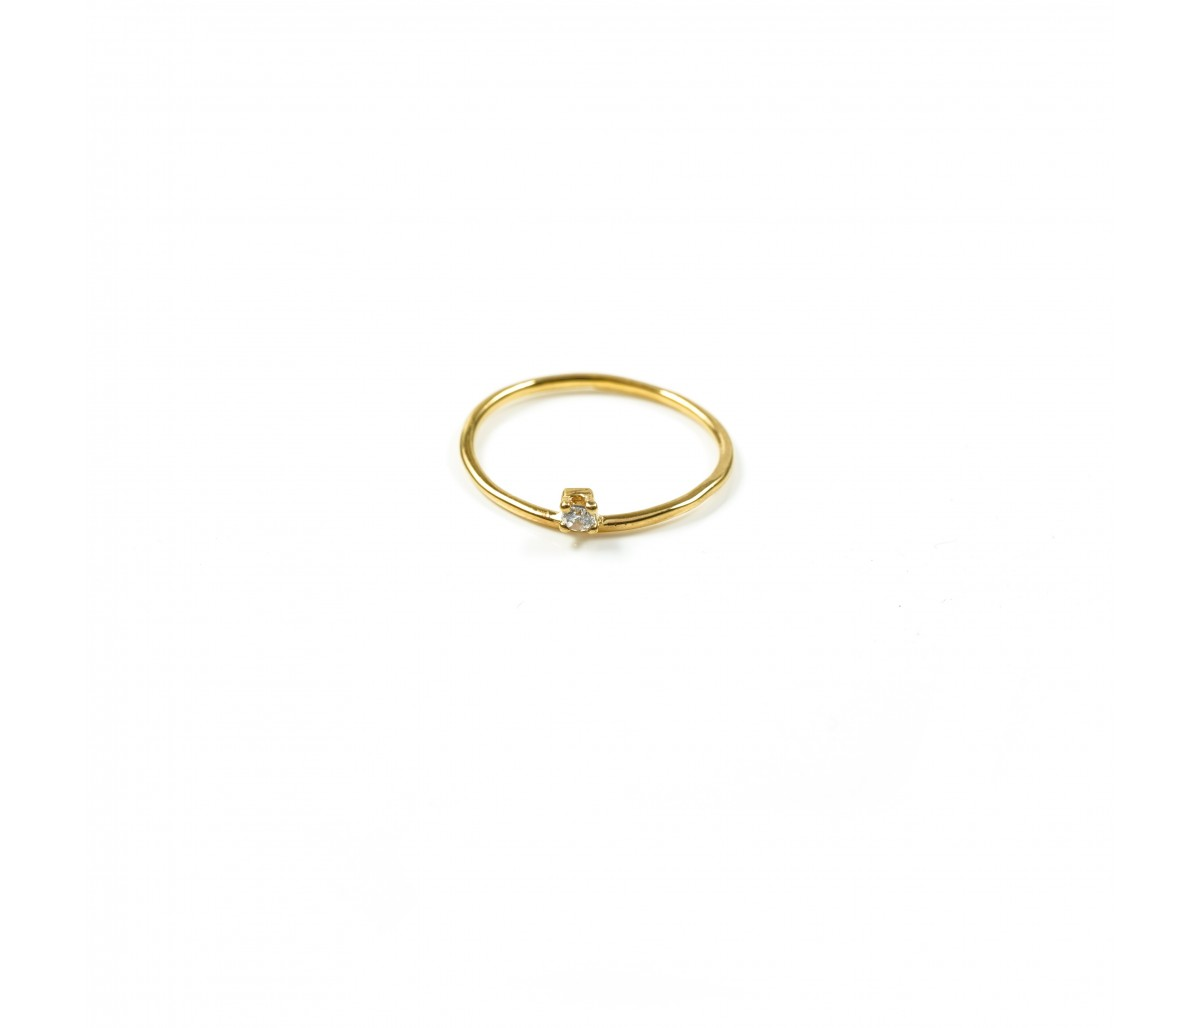 Beth 19k gold ring